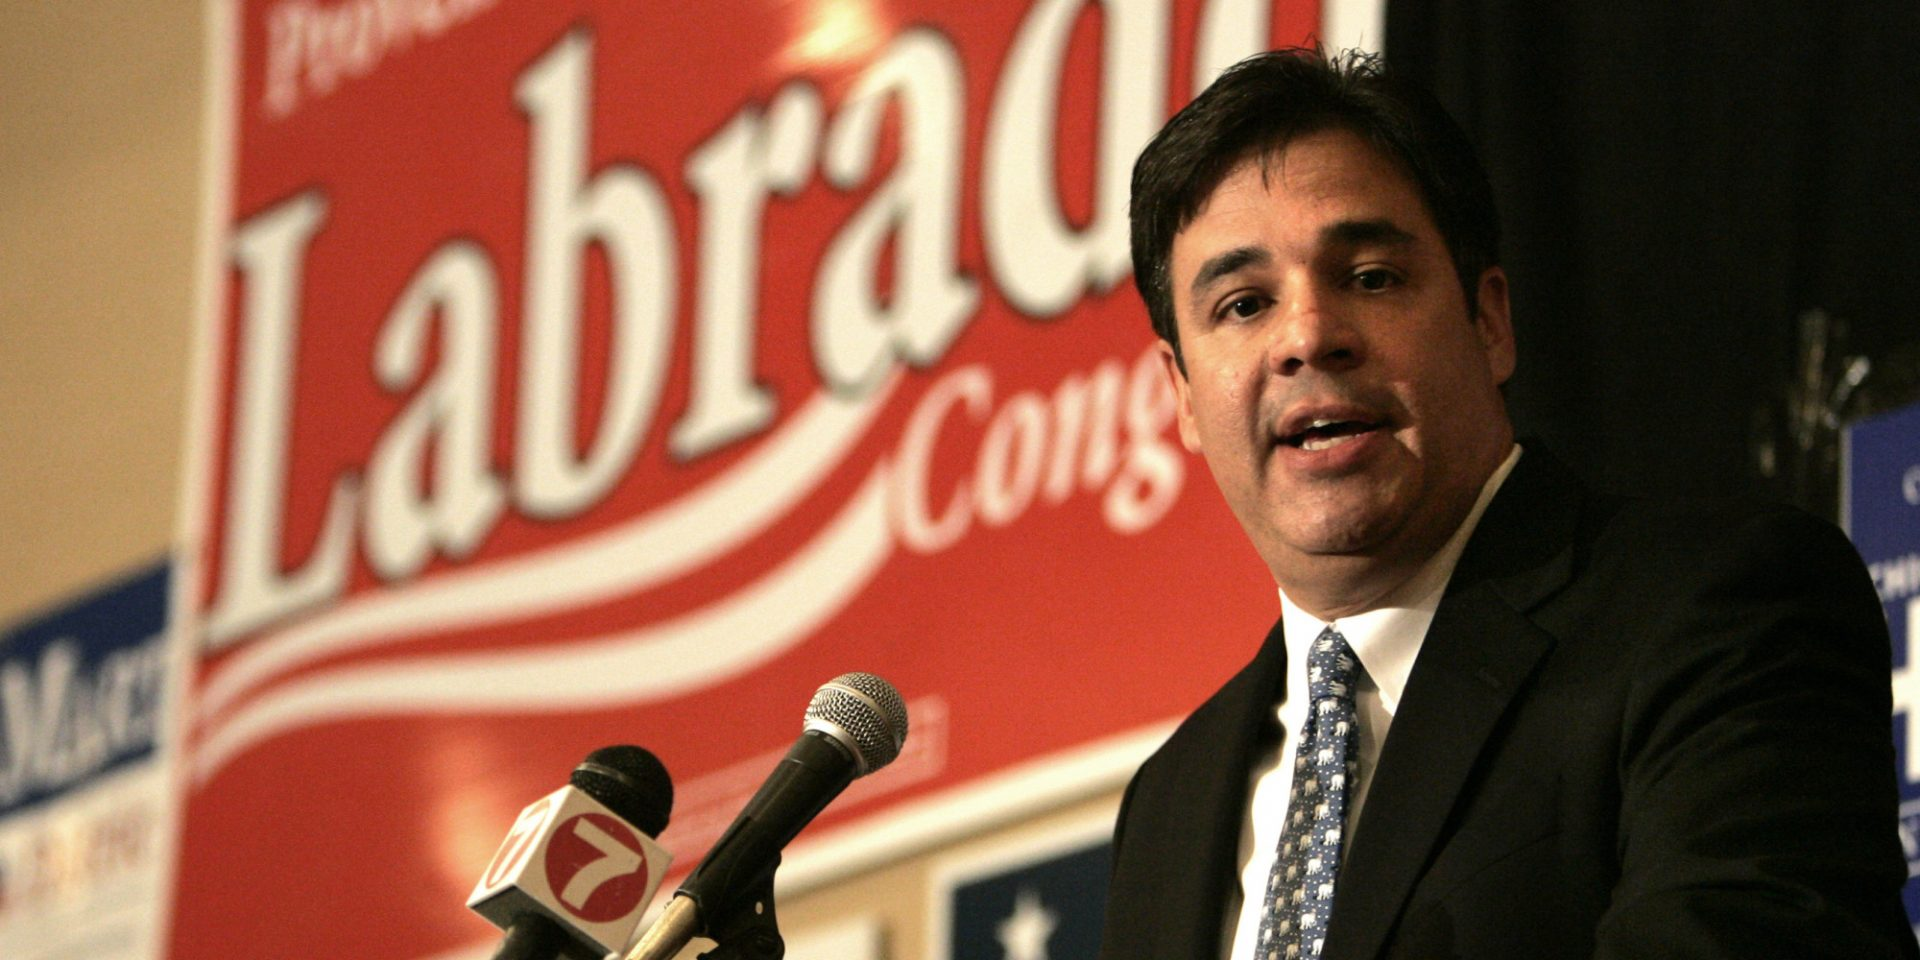 In the Political Arena, is Labrador back in his Conservative Shoes?